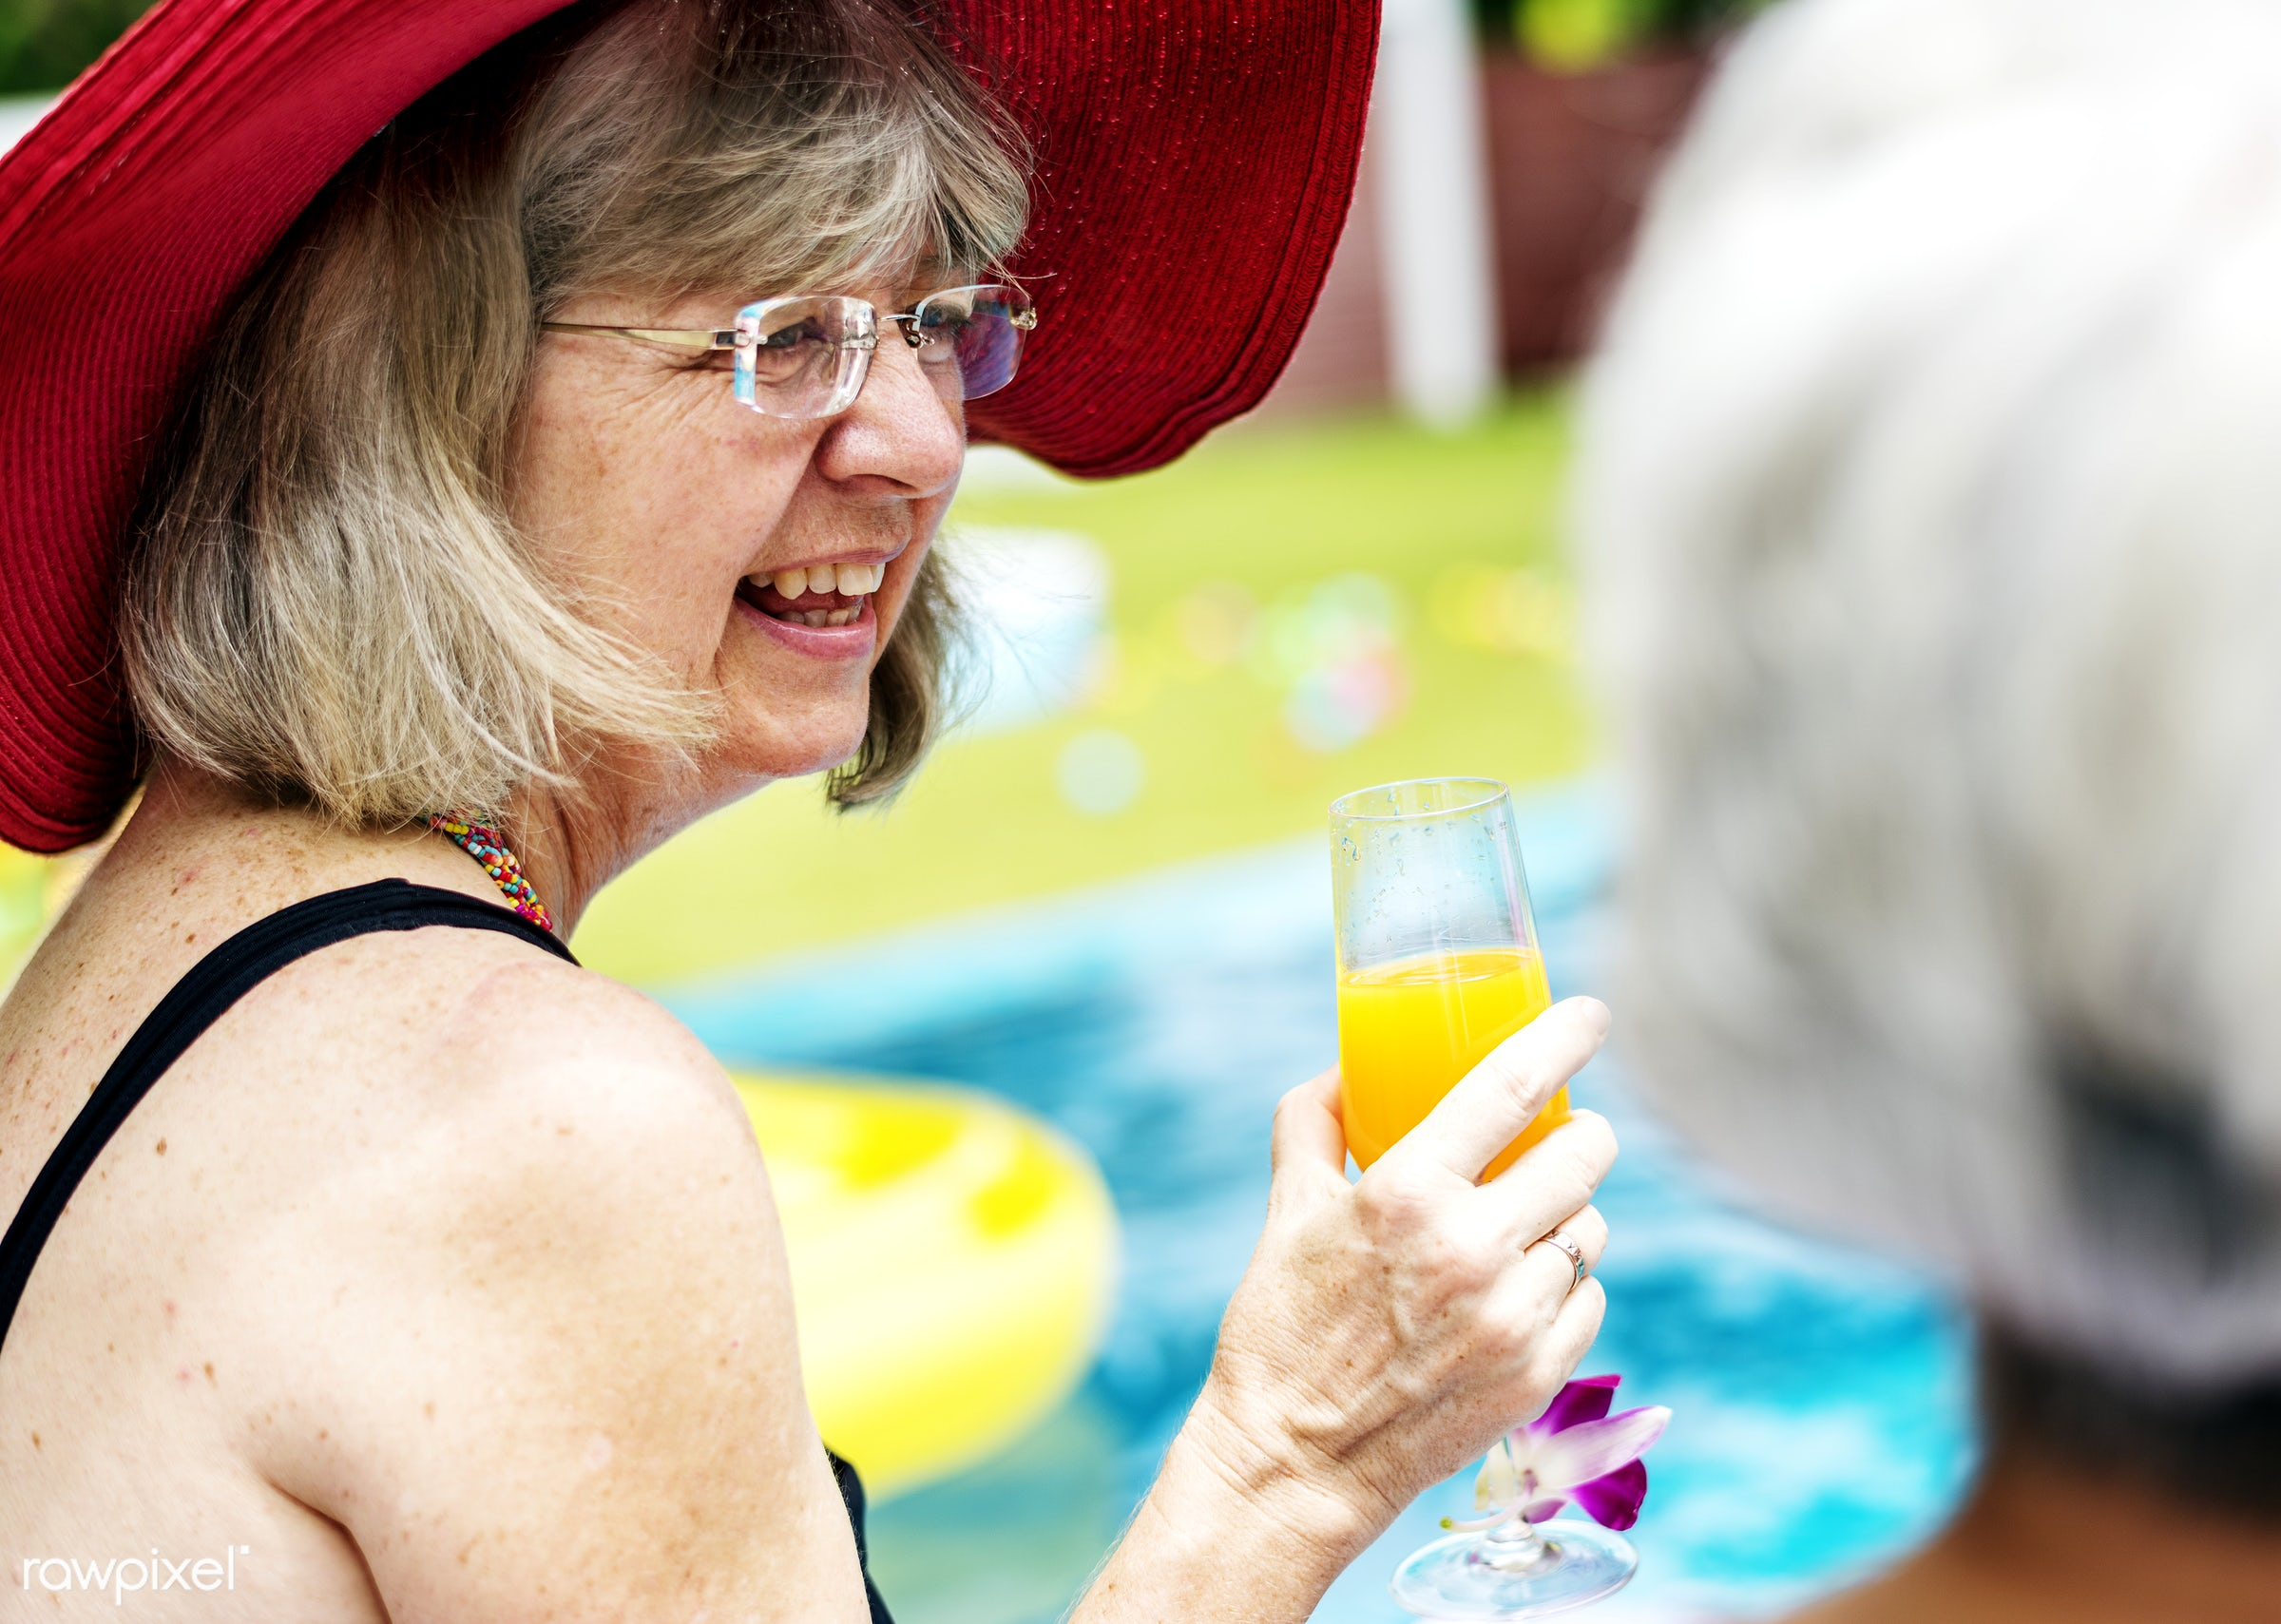 beverage, cheerful, closeup, drink, happy, holiday, inflatable, juice, leisure, party, pool, poolside, recreation, relax,...